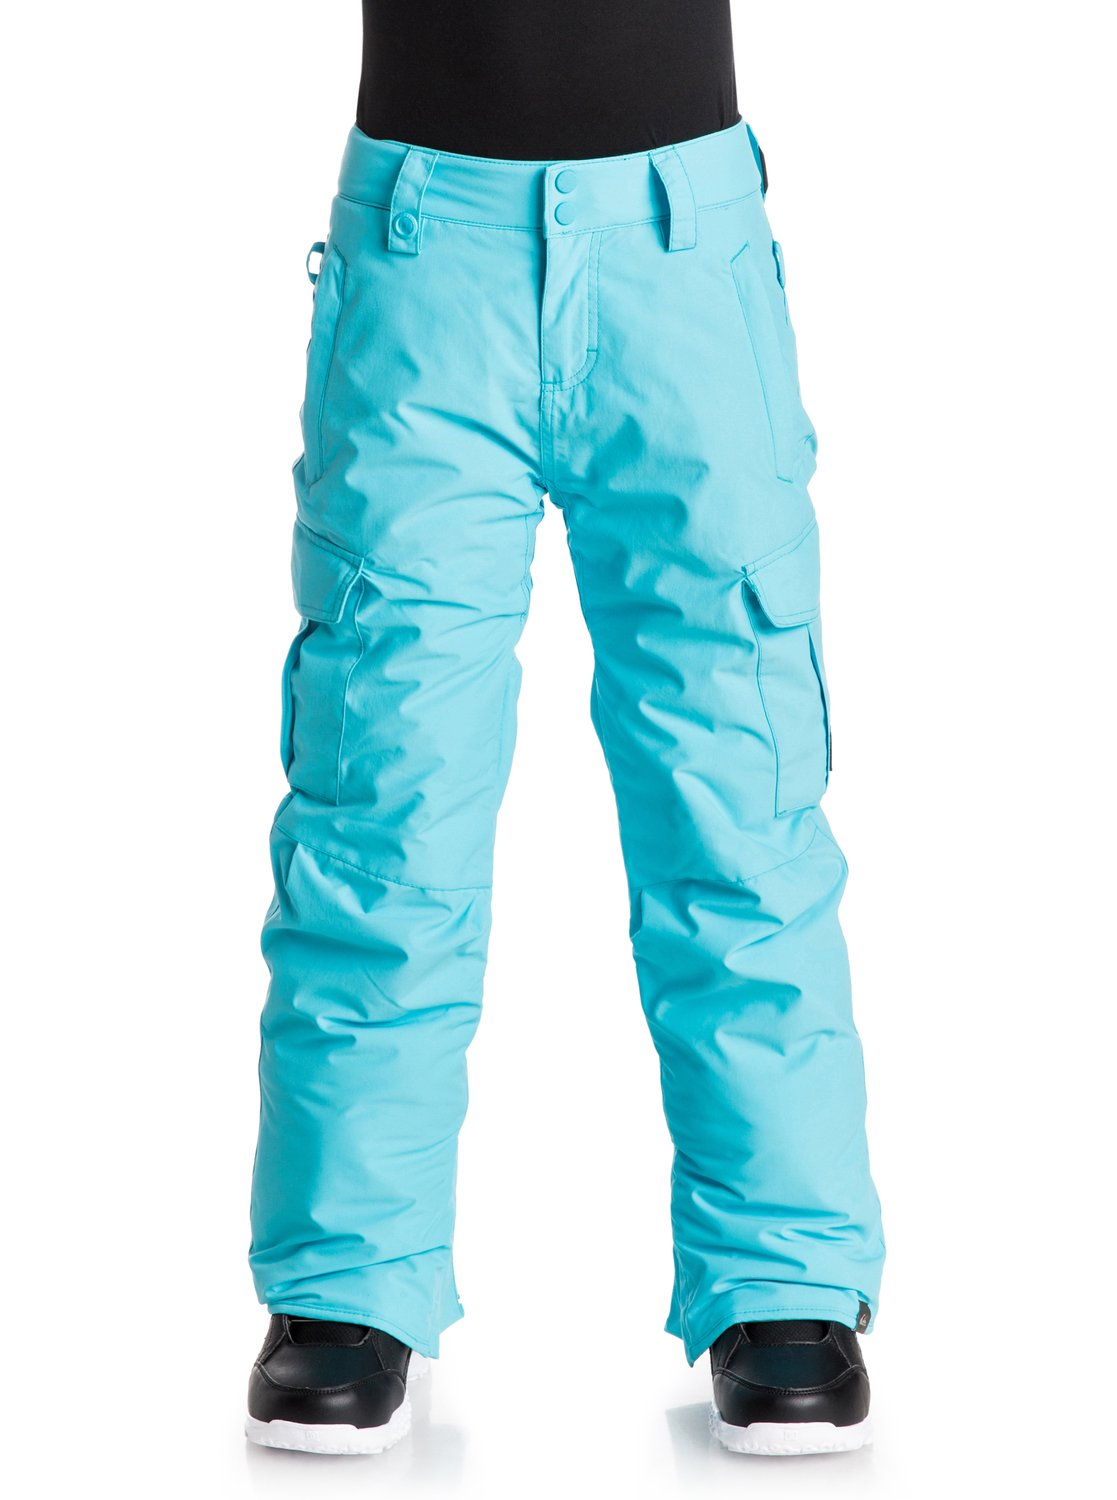 Сноубордические штаны PorterThe Porter snow pants for boys feature our classic regular fit that suits everyone and provides a comfortable, relaxed cut that's not too baggy but leaves space for layering. 10K Quiksilver DryFlight® technology waterproofing provides reliable waterproof and breathable protection and Warmflight® level 2 insulation offers low-bulk warmth.<br>